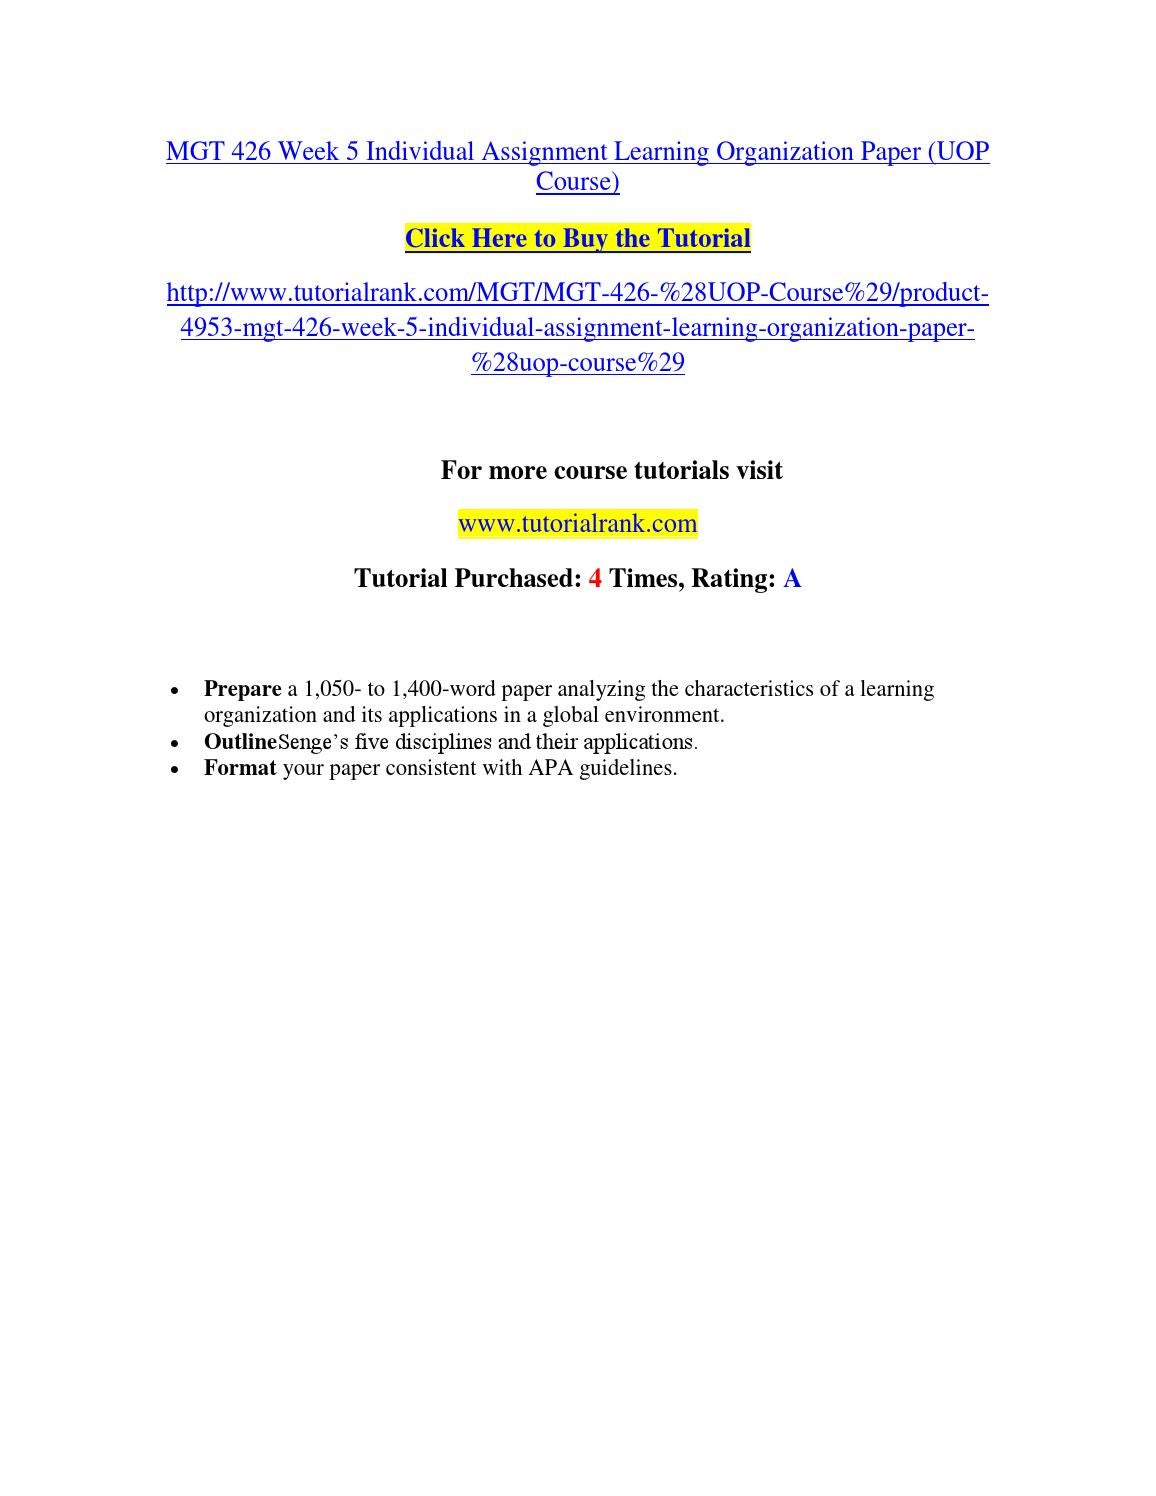 mgt 426 week 5 learning organization Snaptutorial is a online tutorial store we provides mgt 426 week 5 individual assignment learning organization paper.